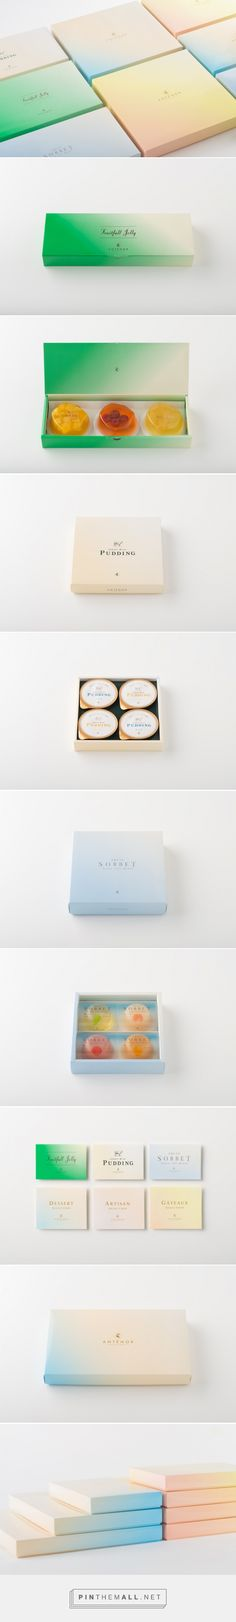 Branding, graphic design, logo and packaging for ANTÉNOR SUMMER GIFT by UMA / design farm curated by Packaging Diva PD. How pretty is this packaging?